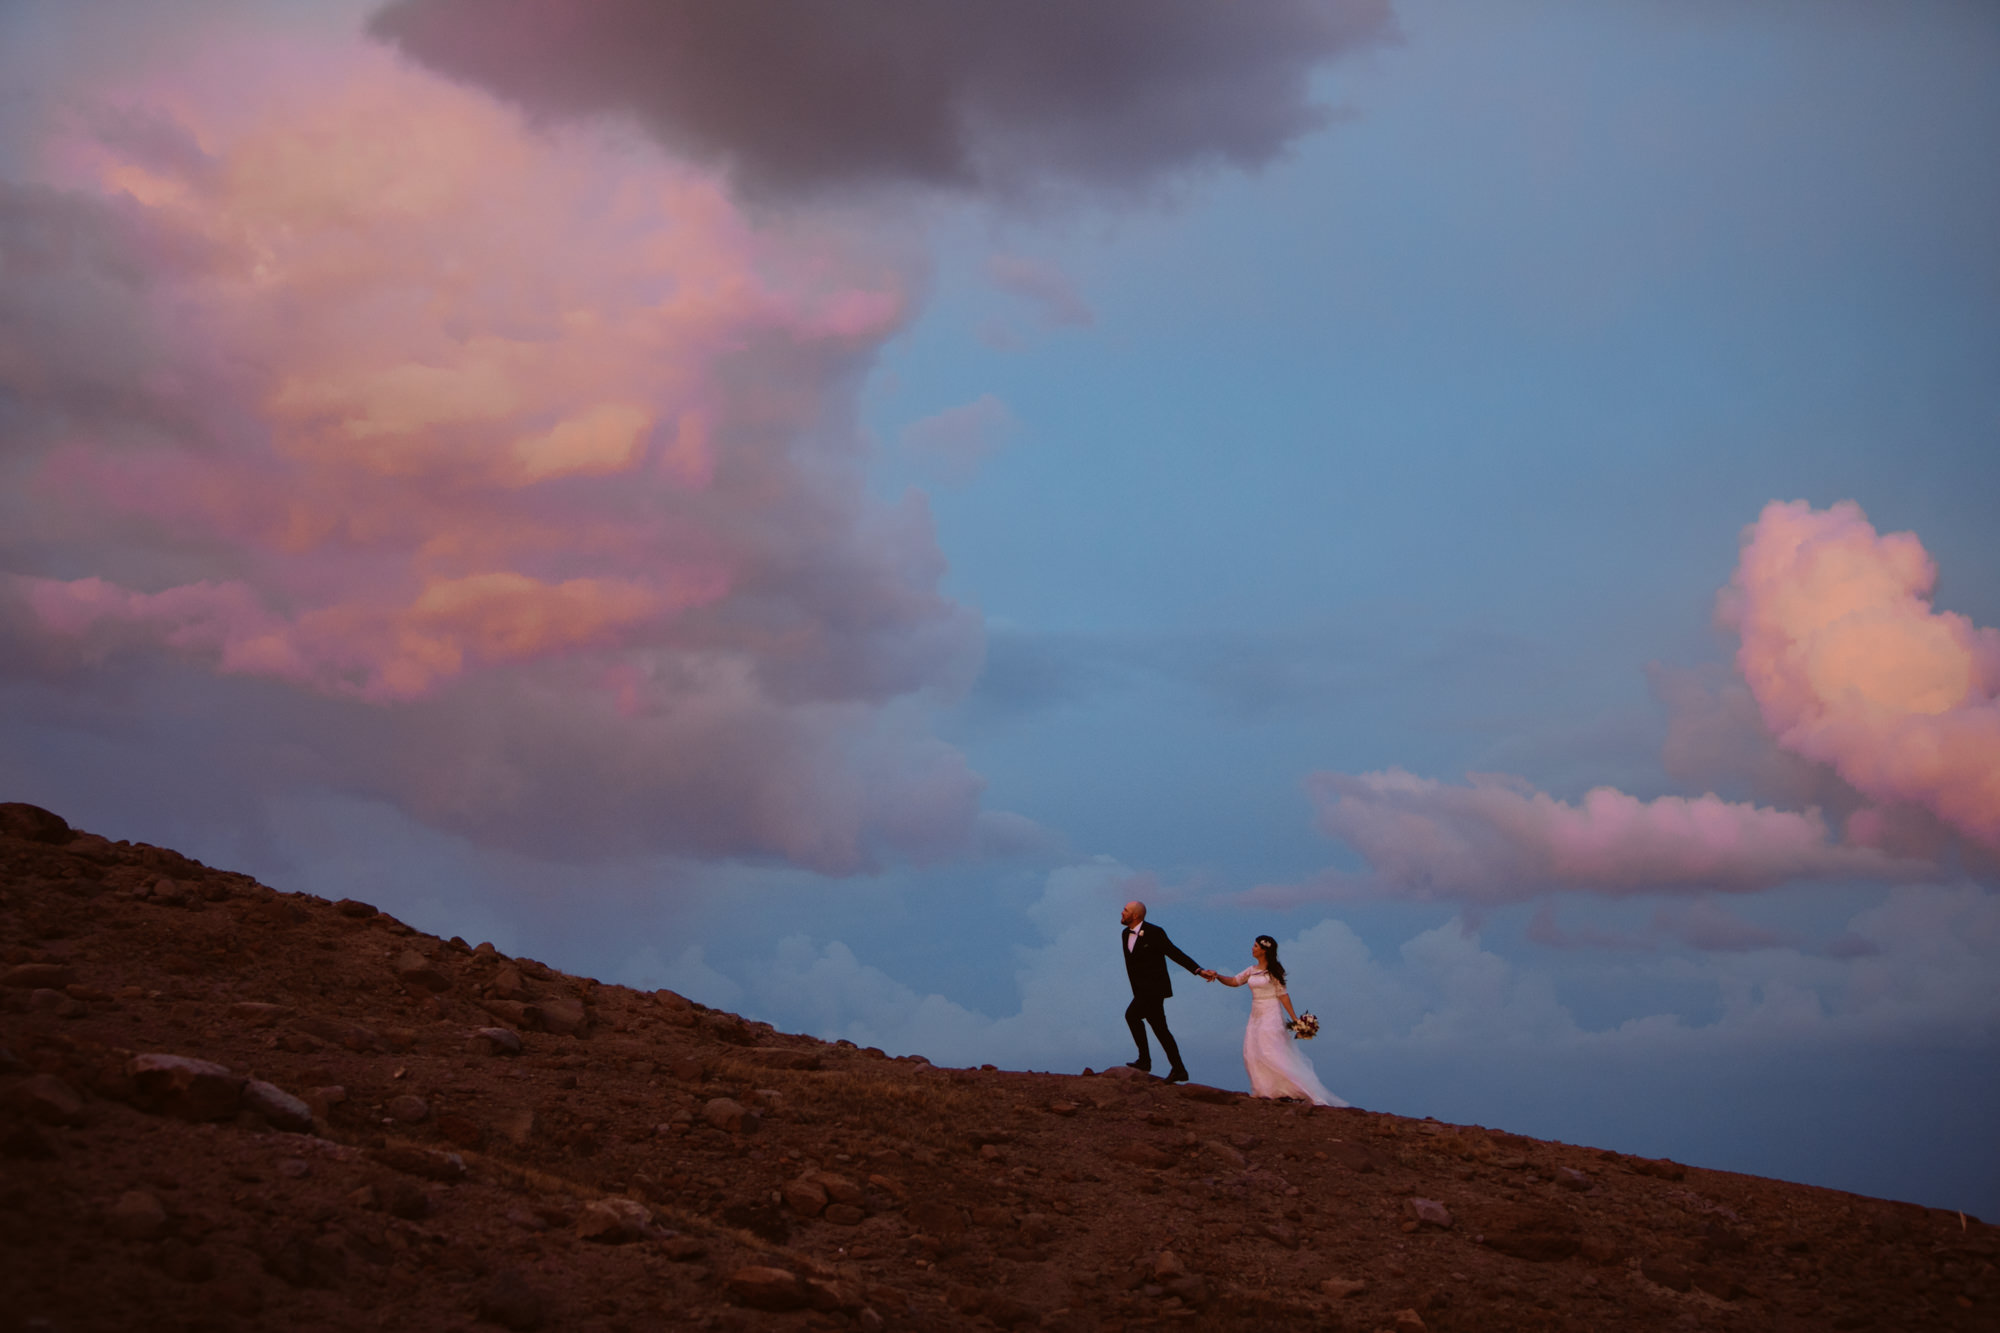 Couple makes their way up mountain during pink sunset - Jessica Hill Photography